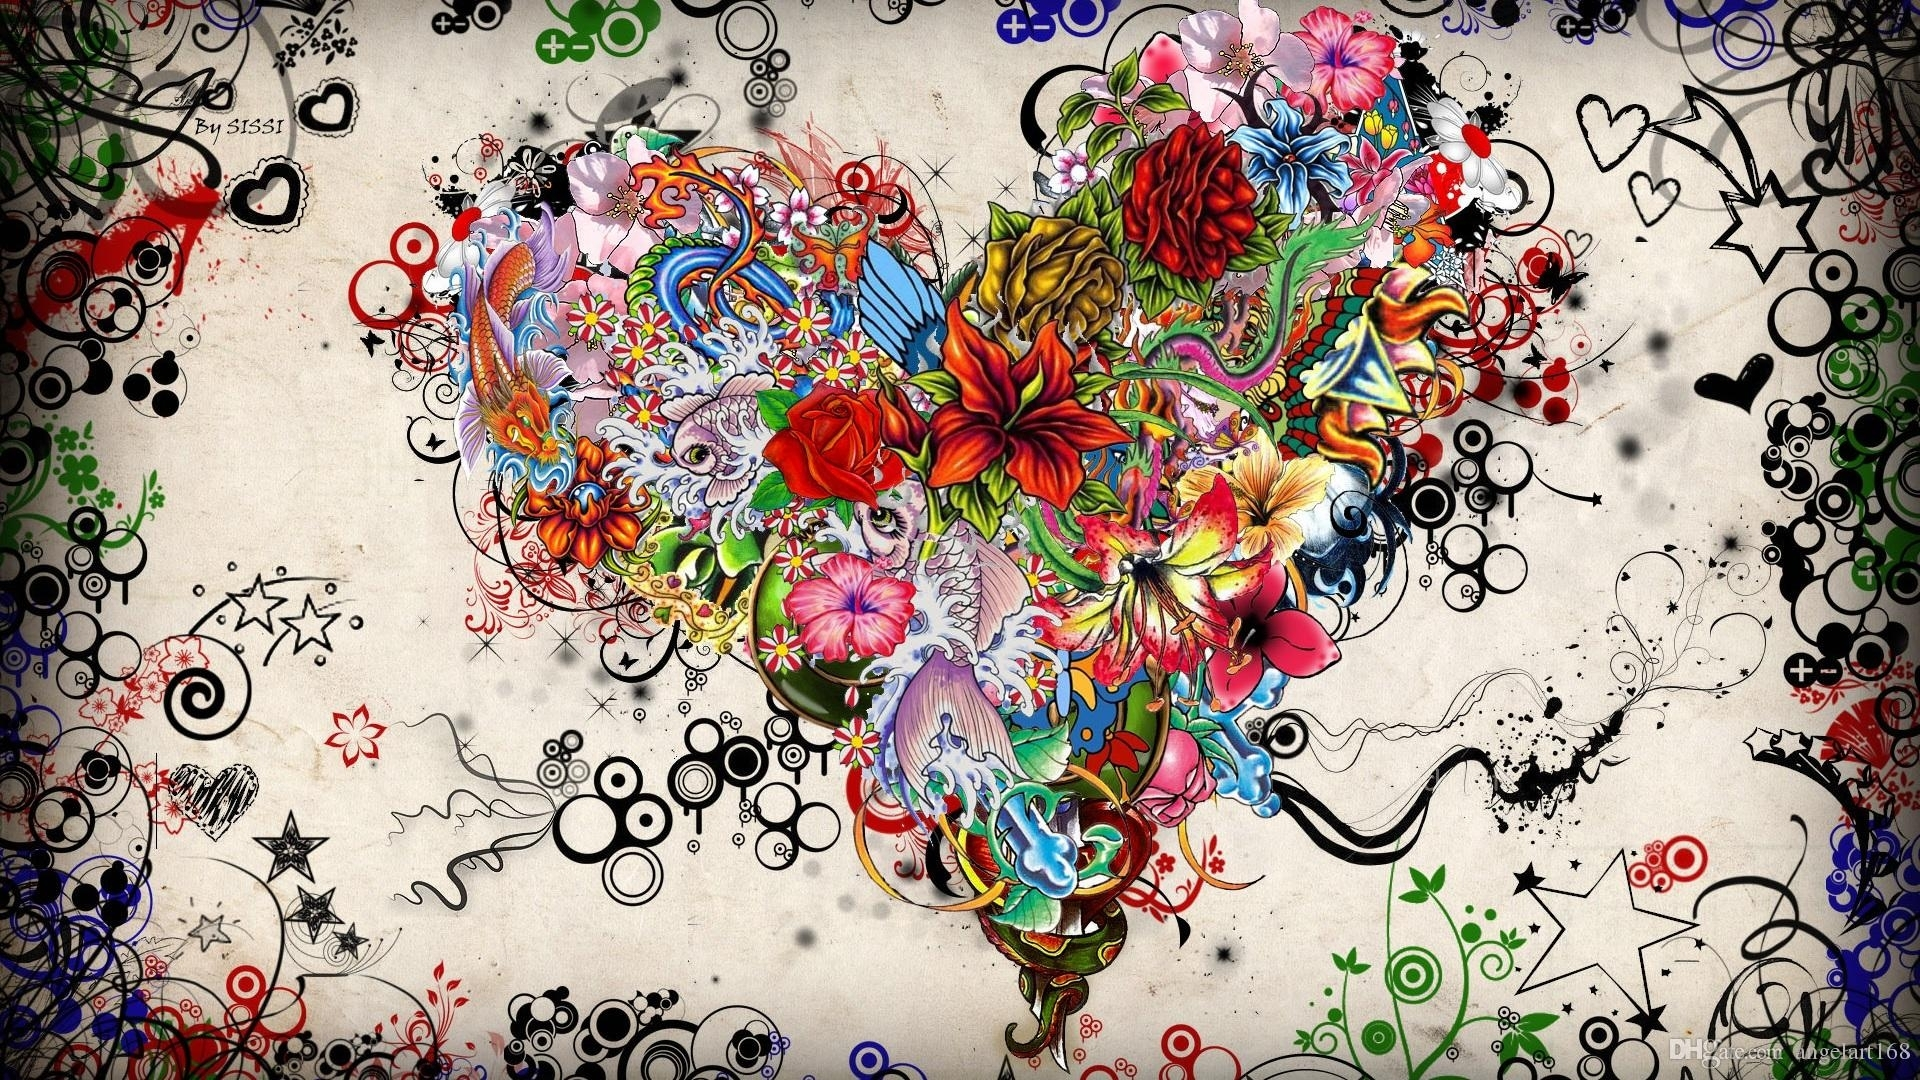 2018 Single Unframed Colourful Flower Abstract Heart Flower Pertaining To 2018 Abstract Heart Wall Art (View 2 of 20)